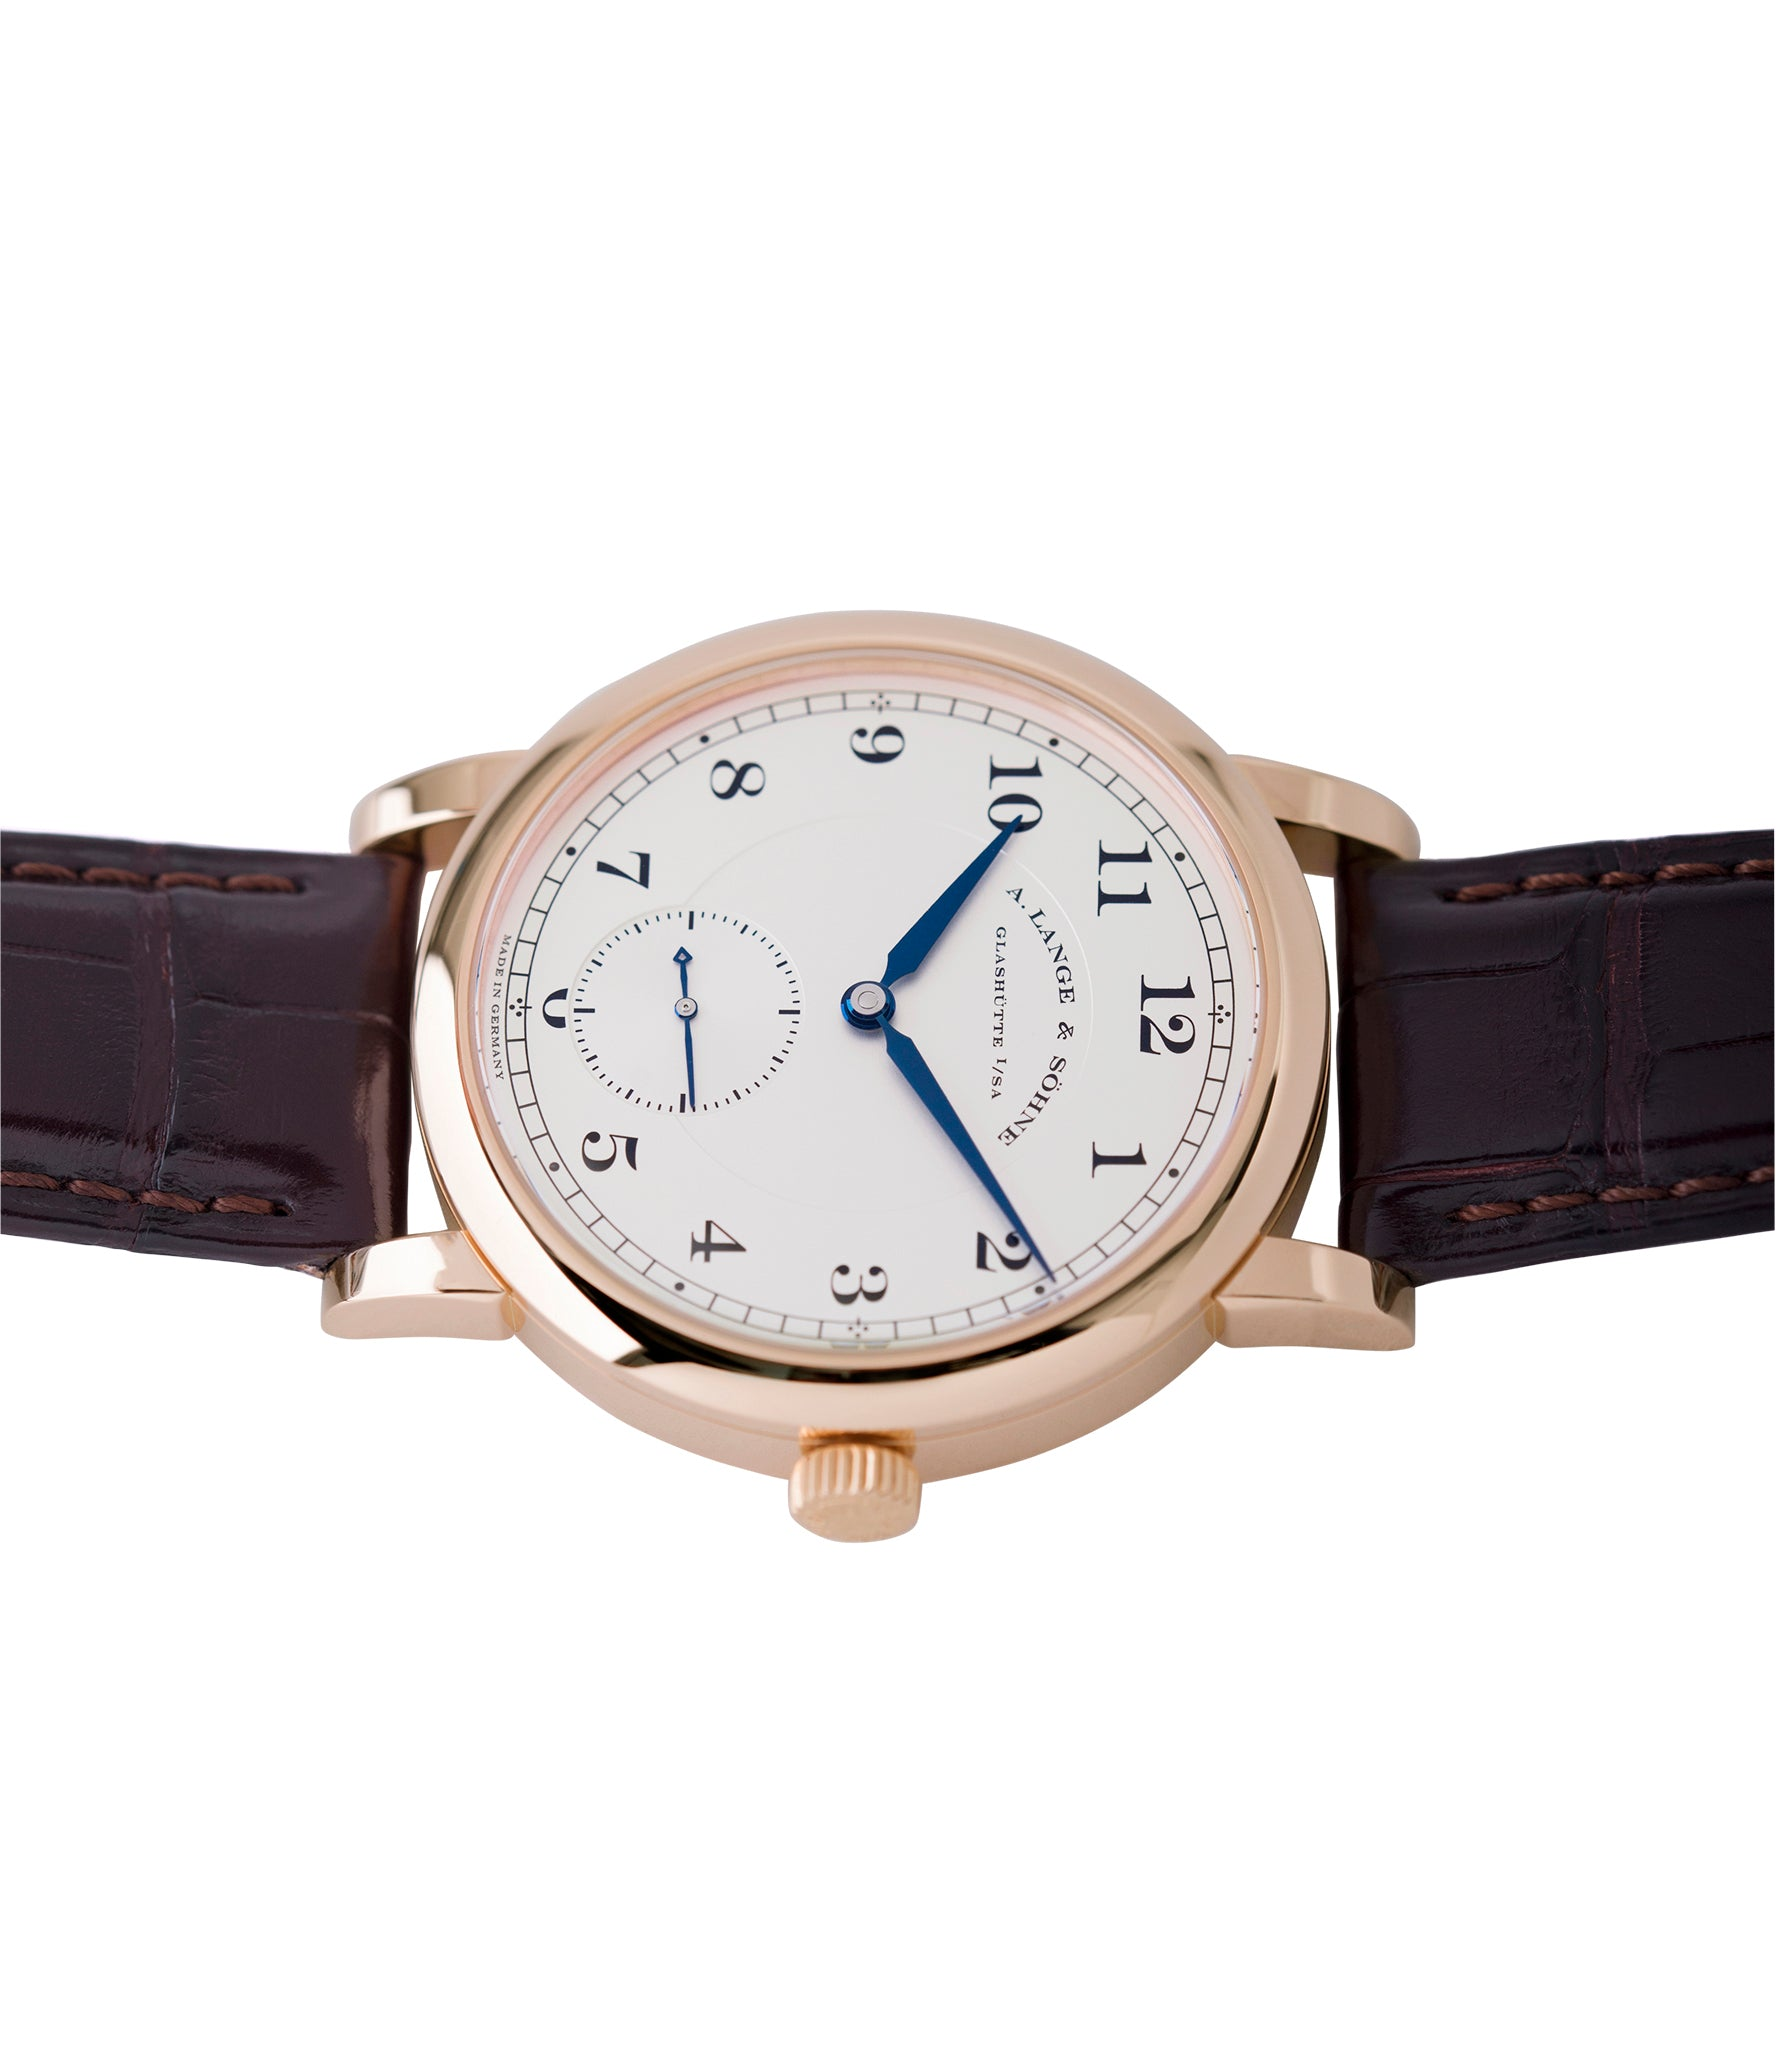 233.032 A. Lange & Sohne 1815 rose gold dress watch for sale online at A Collected Man London Uk specialist of preowned luxury watches